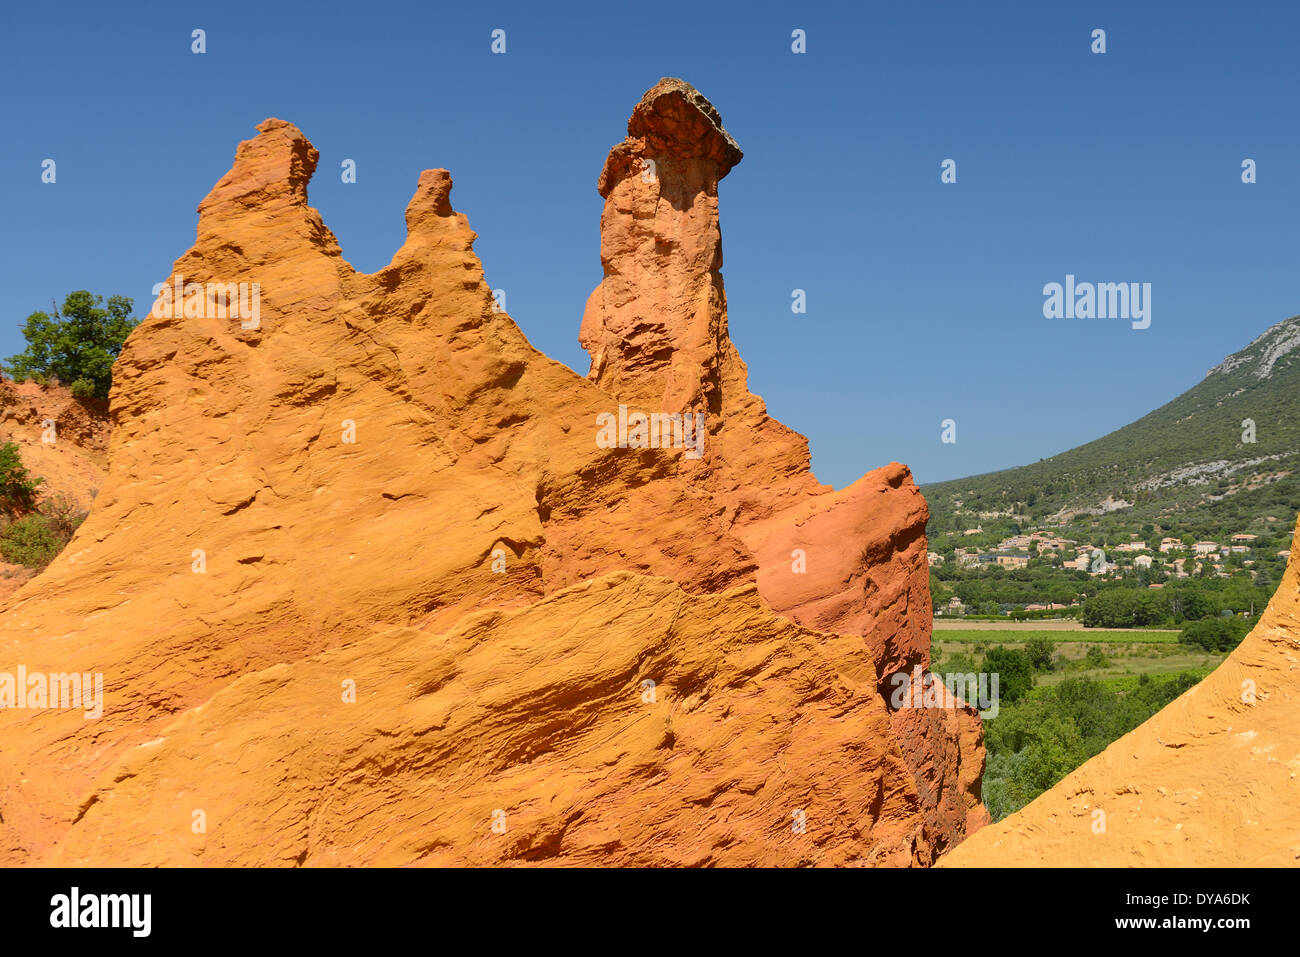 Europe, Roussillon, Vaucluse, Provence, France, ochre, rock, red, village, nature - Stock Image